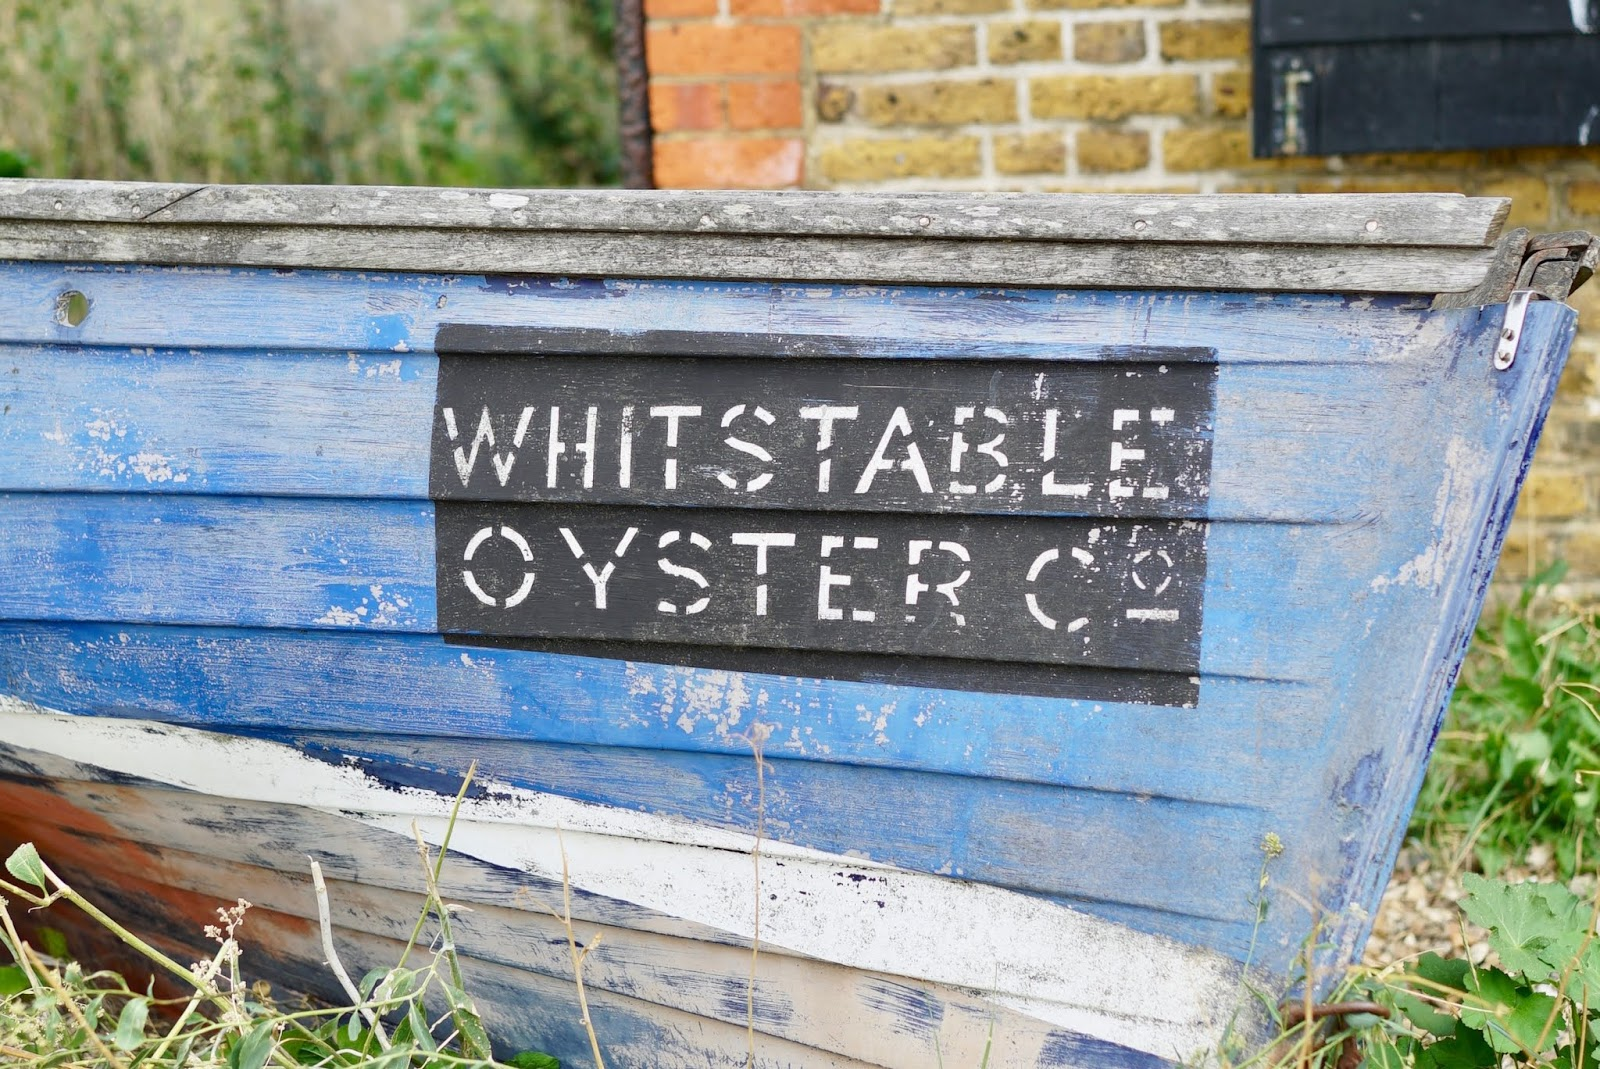 DAY TRIP TO THE SEASIDE, FROM LONDON TO WHITSTABLE